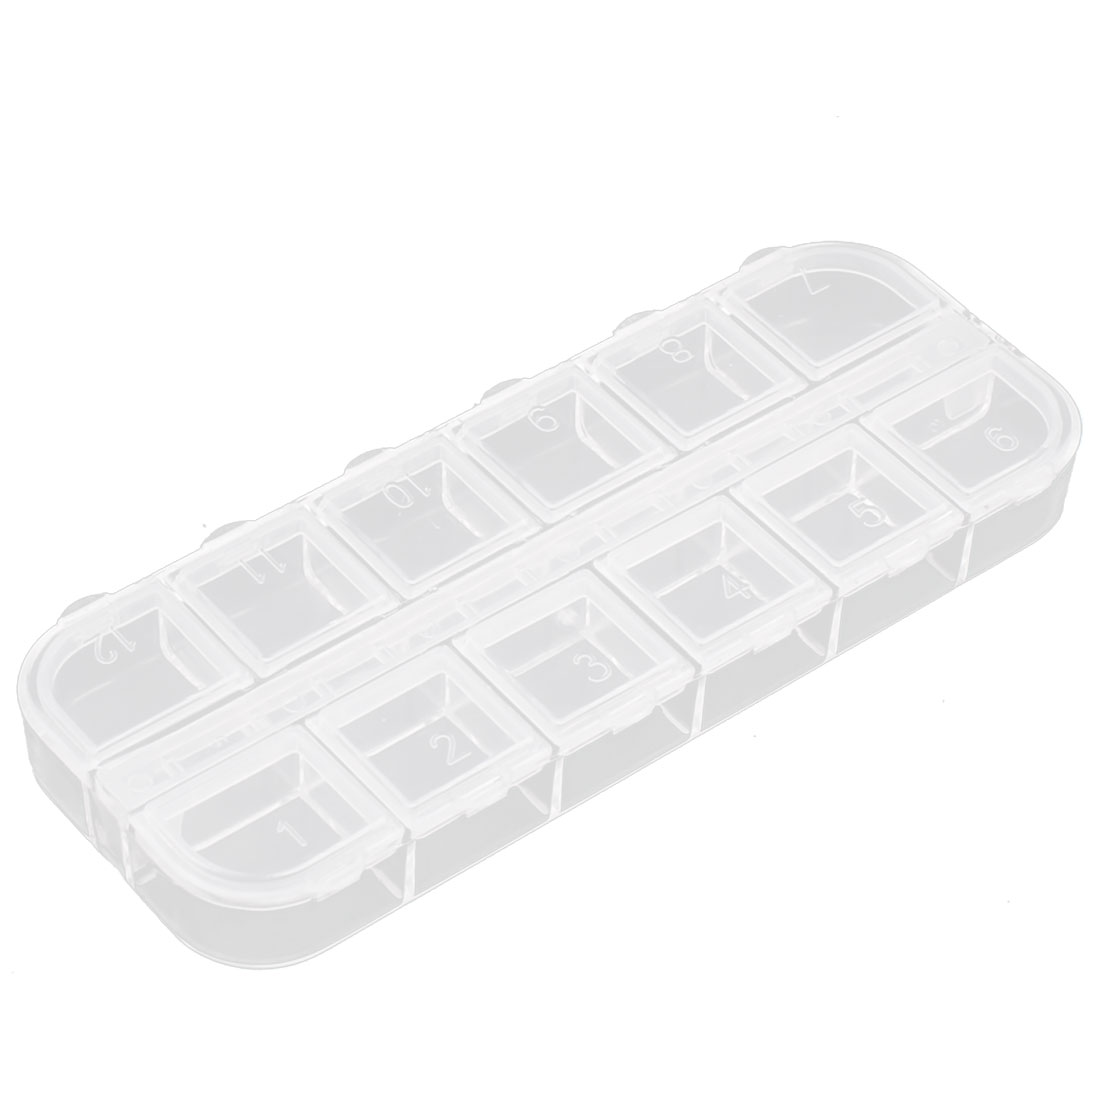 Electronic Component Dual Row 12 Slots Storage Case Box Organizer Container Holder